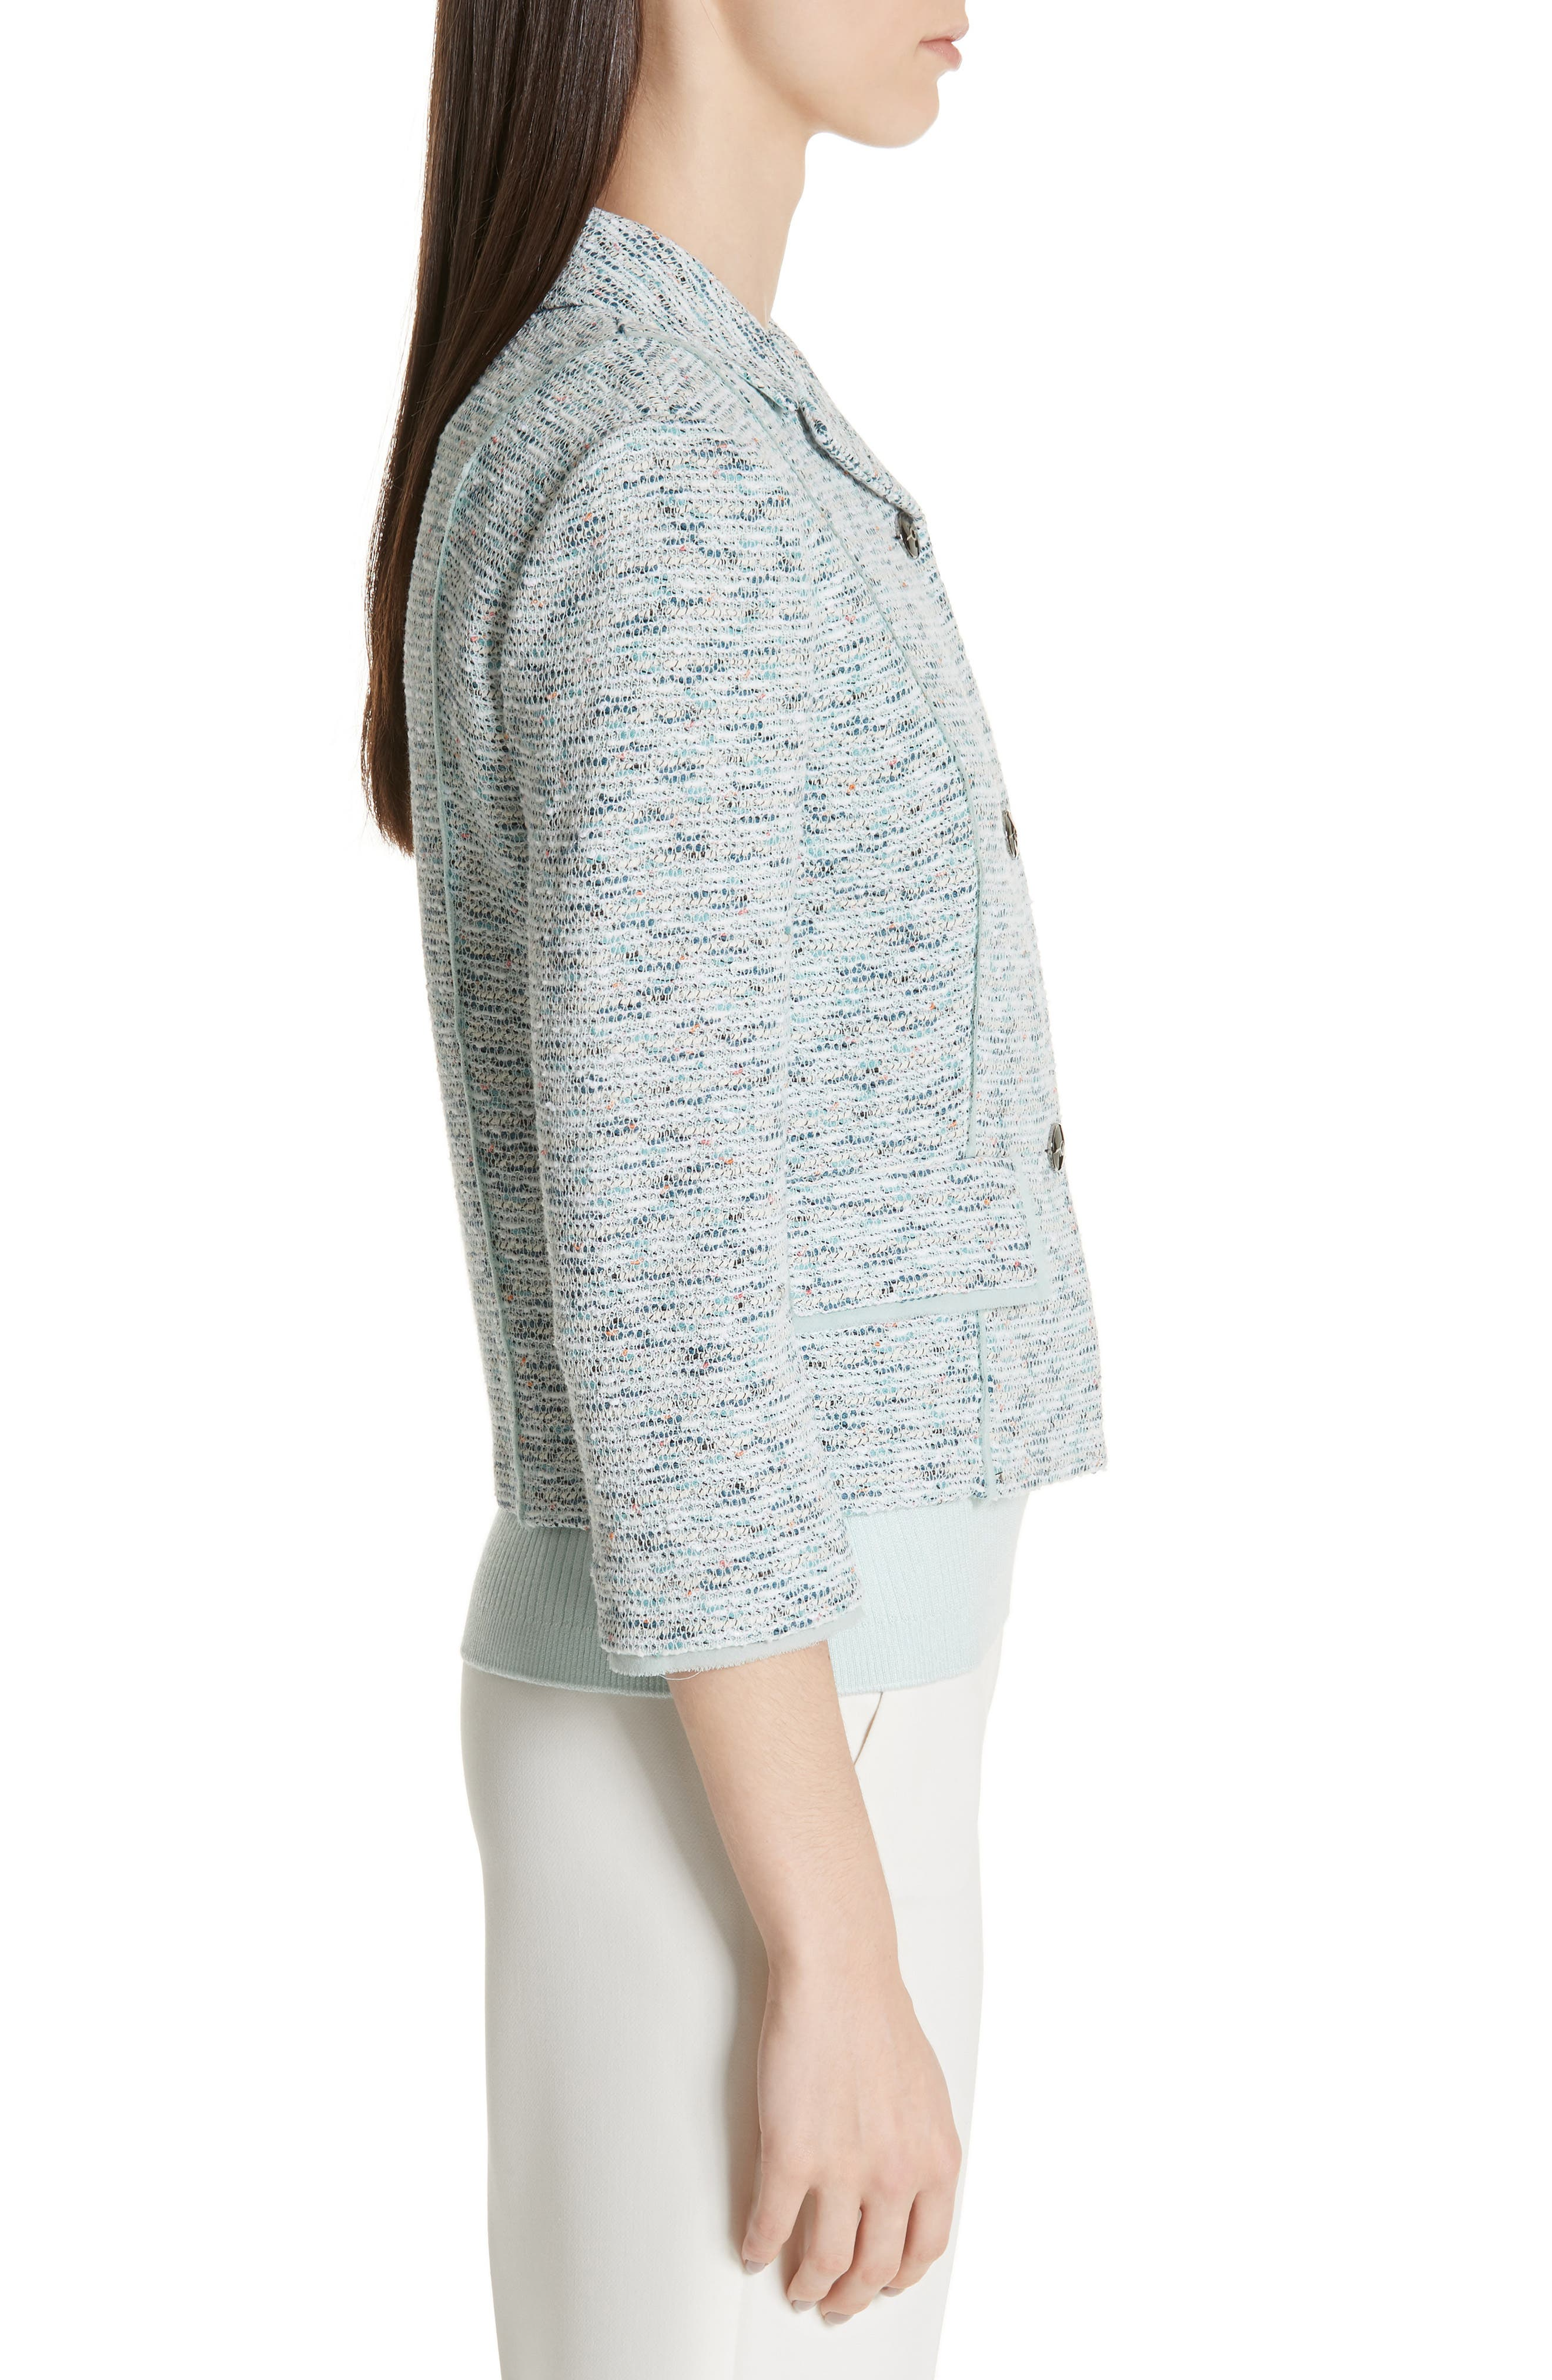 ST. JOHN COLLECTION,                             Alessandra Knit Jacket,                             Alternate thumbnail 3, color,                             OPAL MULTI